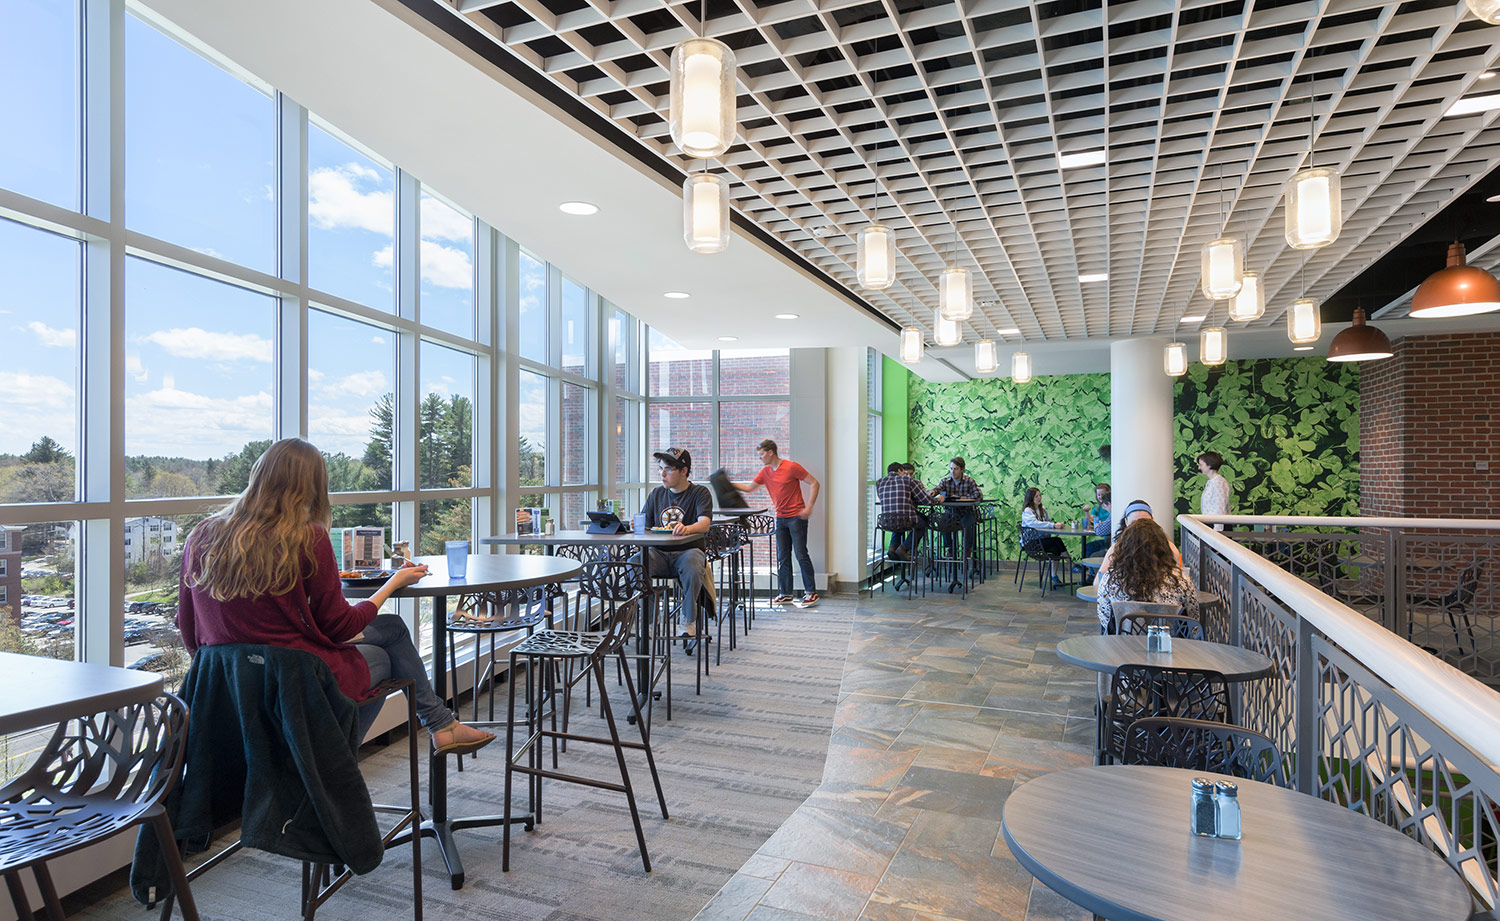 New third floor seating areas